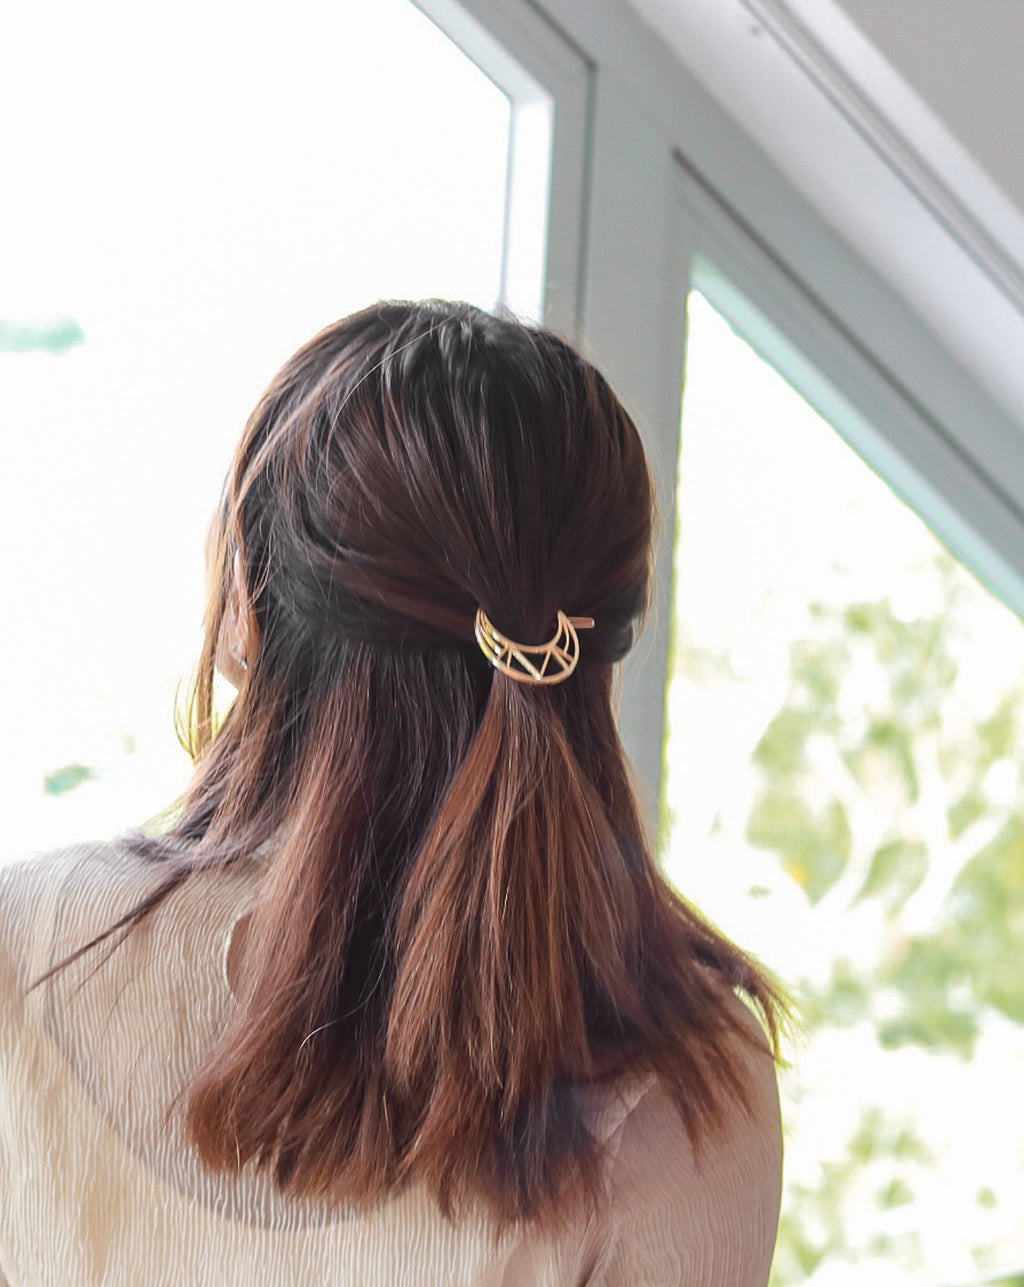 This aztec crescent moon clip adds a touch of elegance to a chic ponytail or half-up hairdo - The Hexad